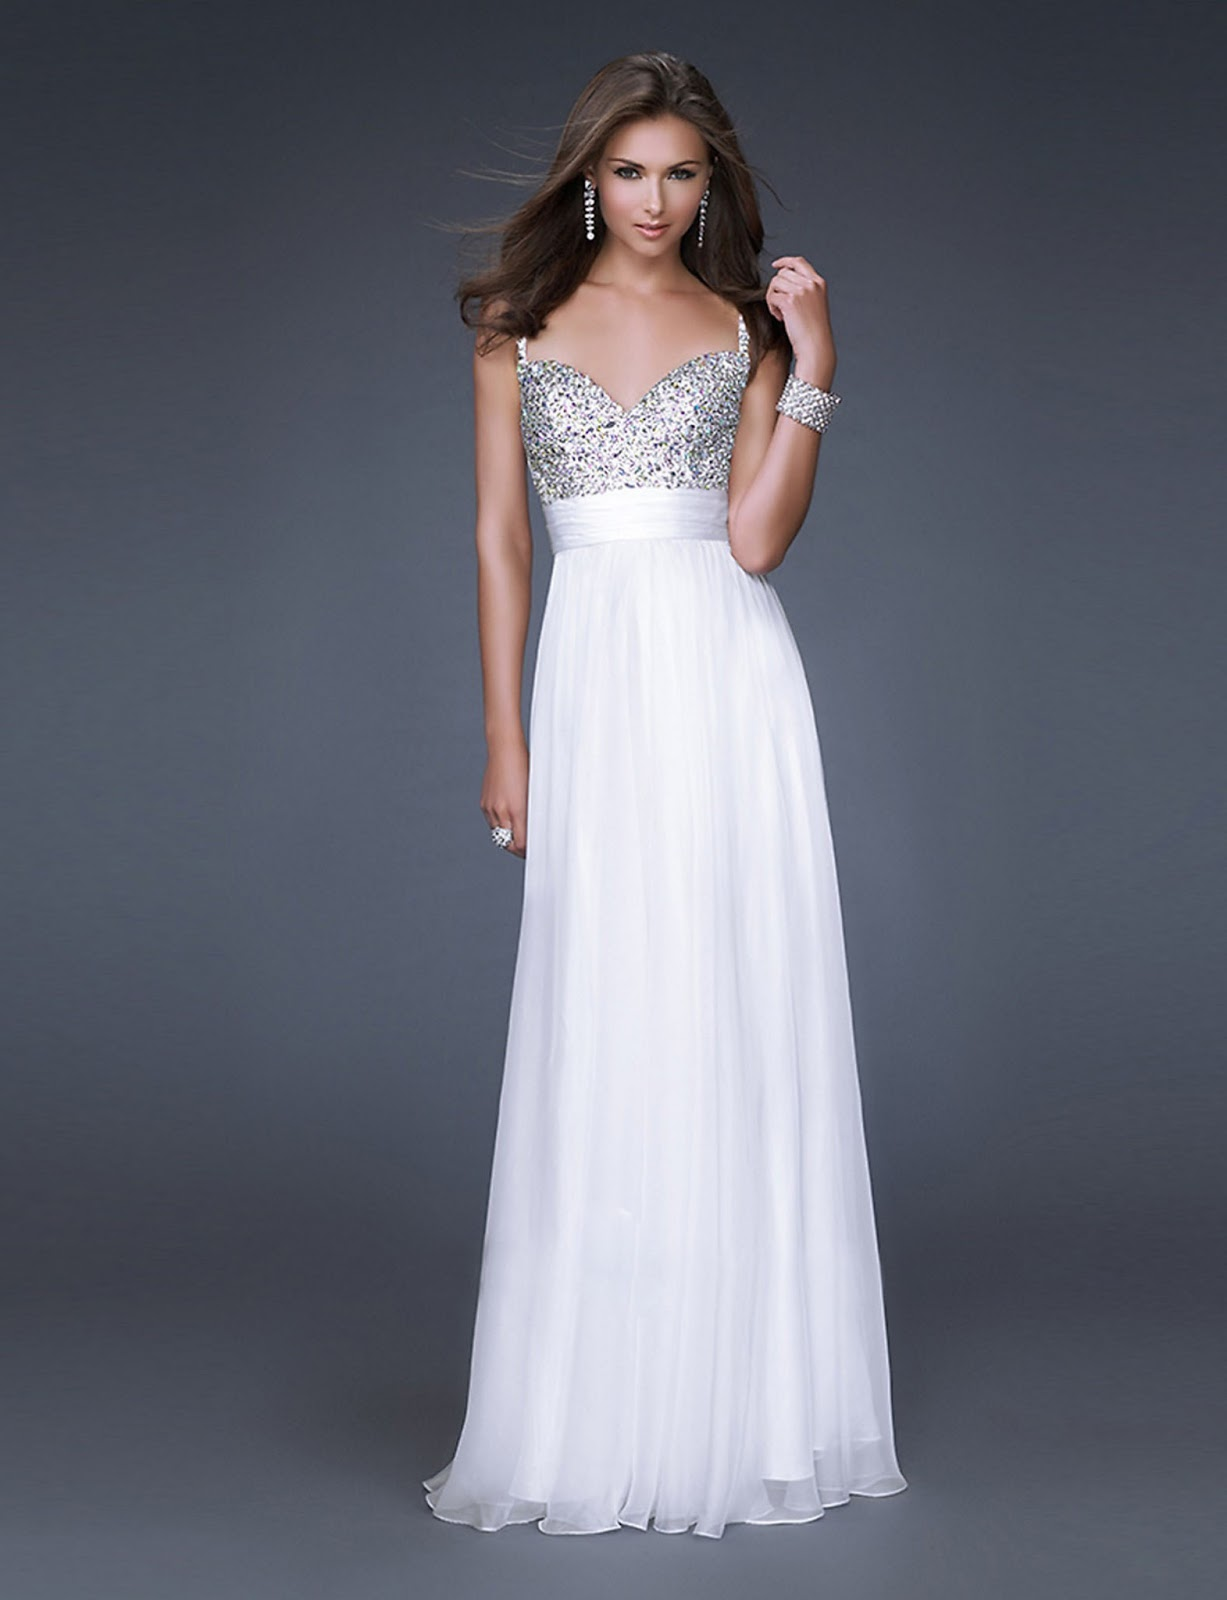 whiteazalea prom dresses beautiful white prom dresses